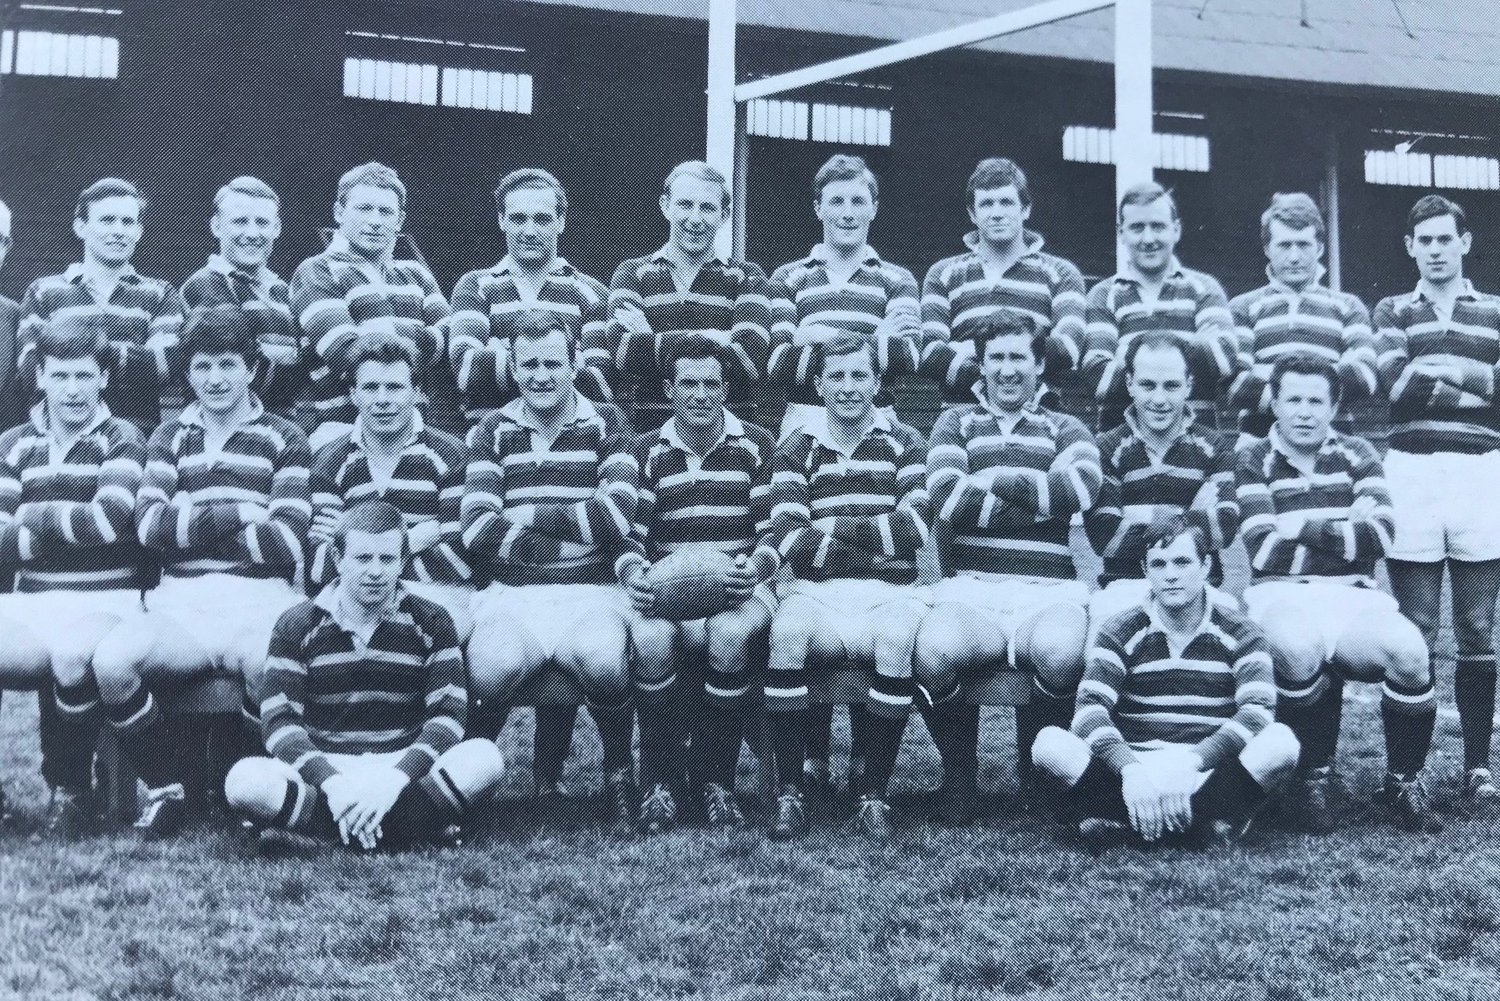 Tigers 1966/67 squad at Welford Road